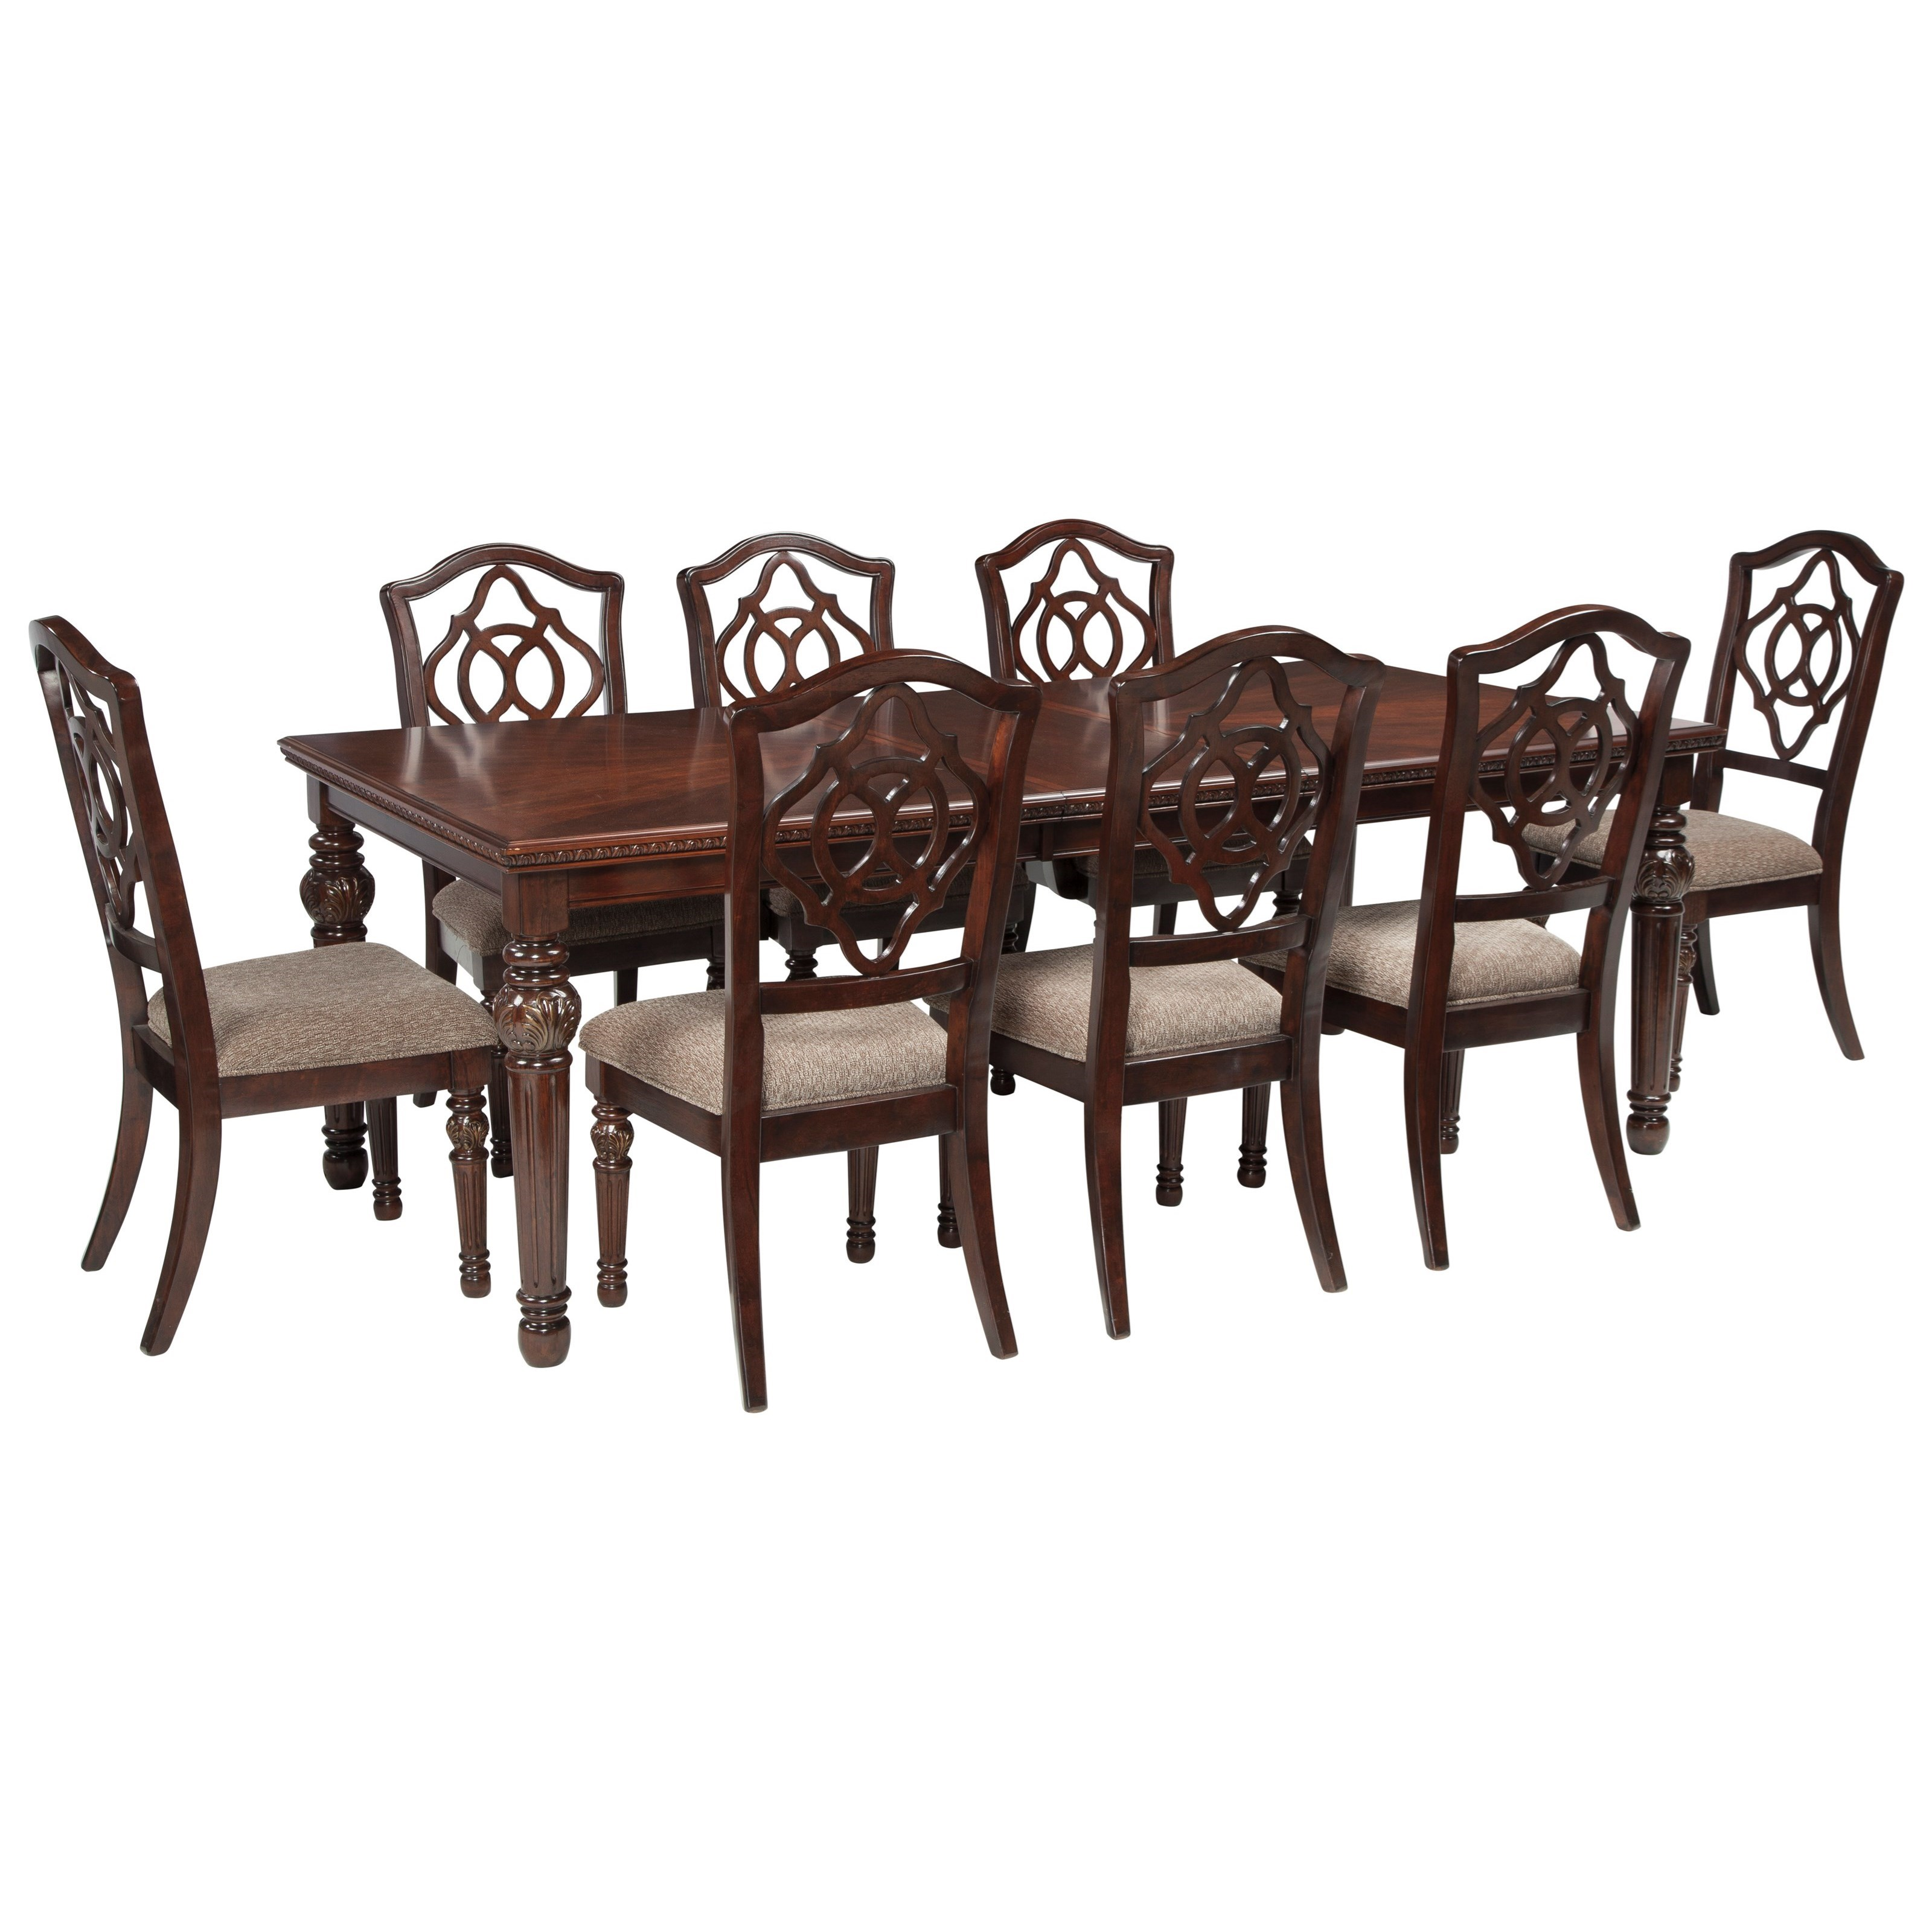 Signature Design by Ashley Leahlyn 9-Piece Rectangular Dining Table Set - Item Number: D626-35+8x01